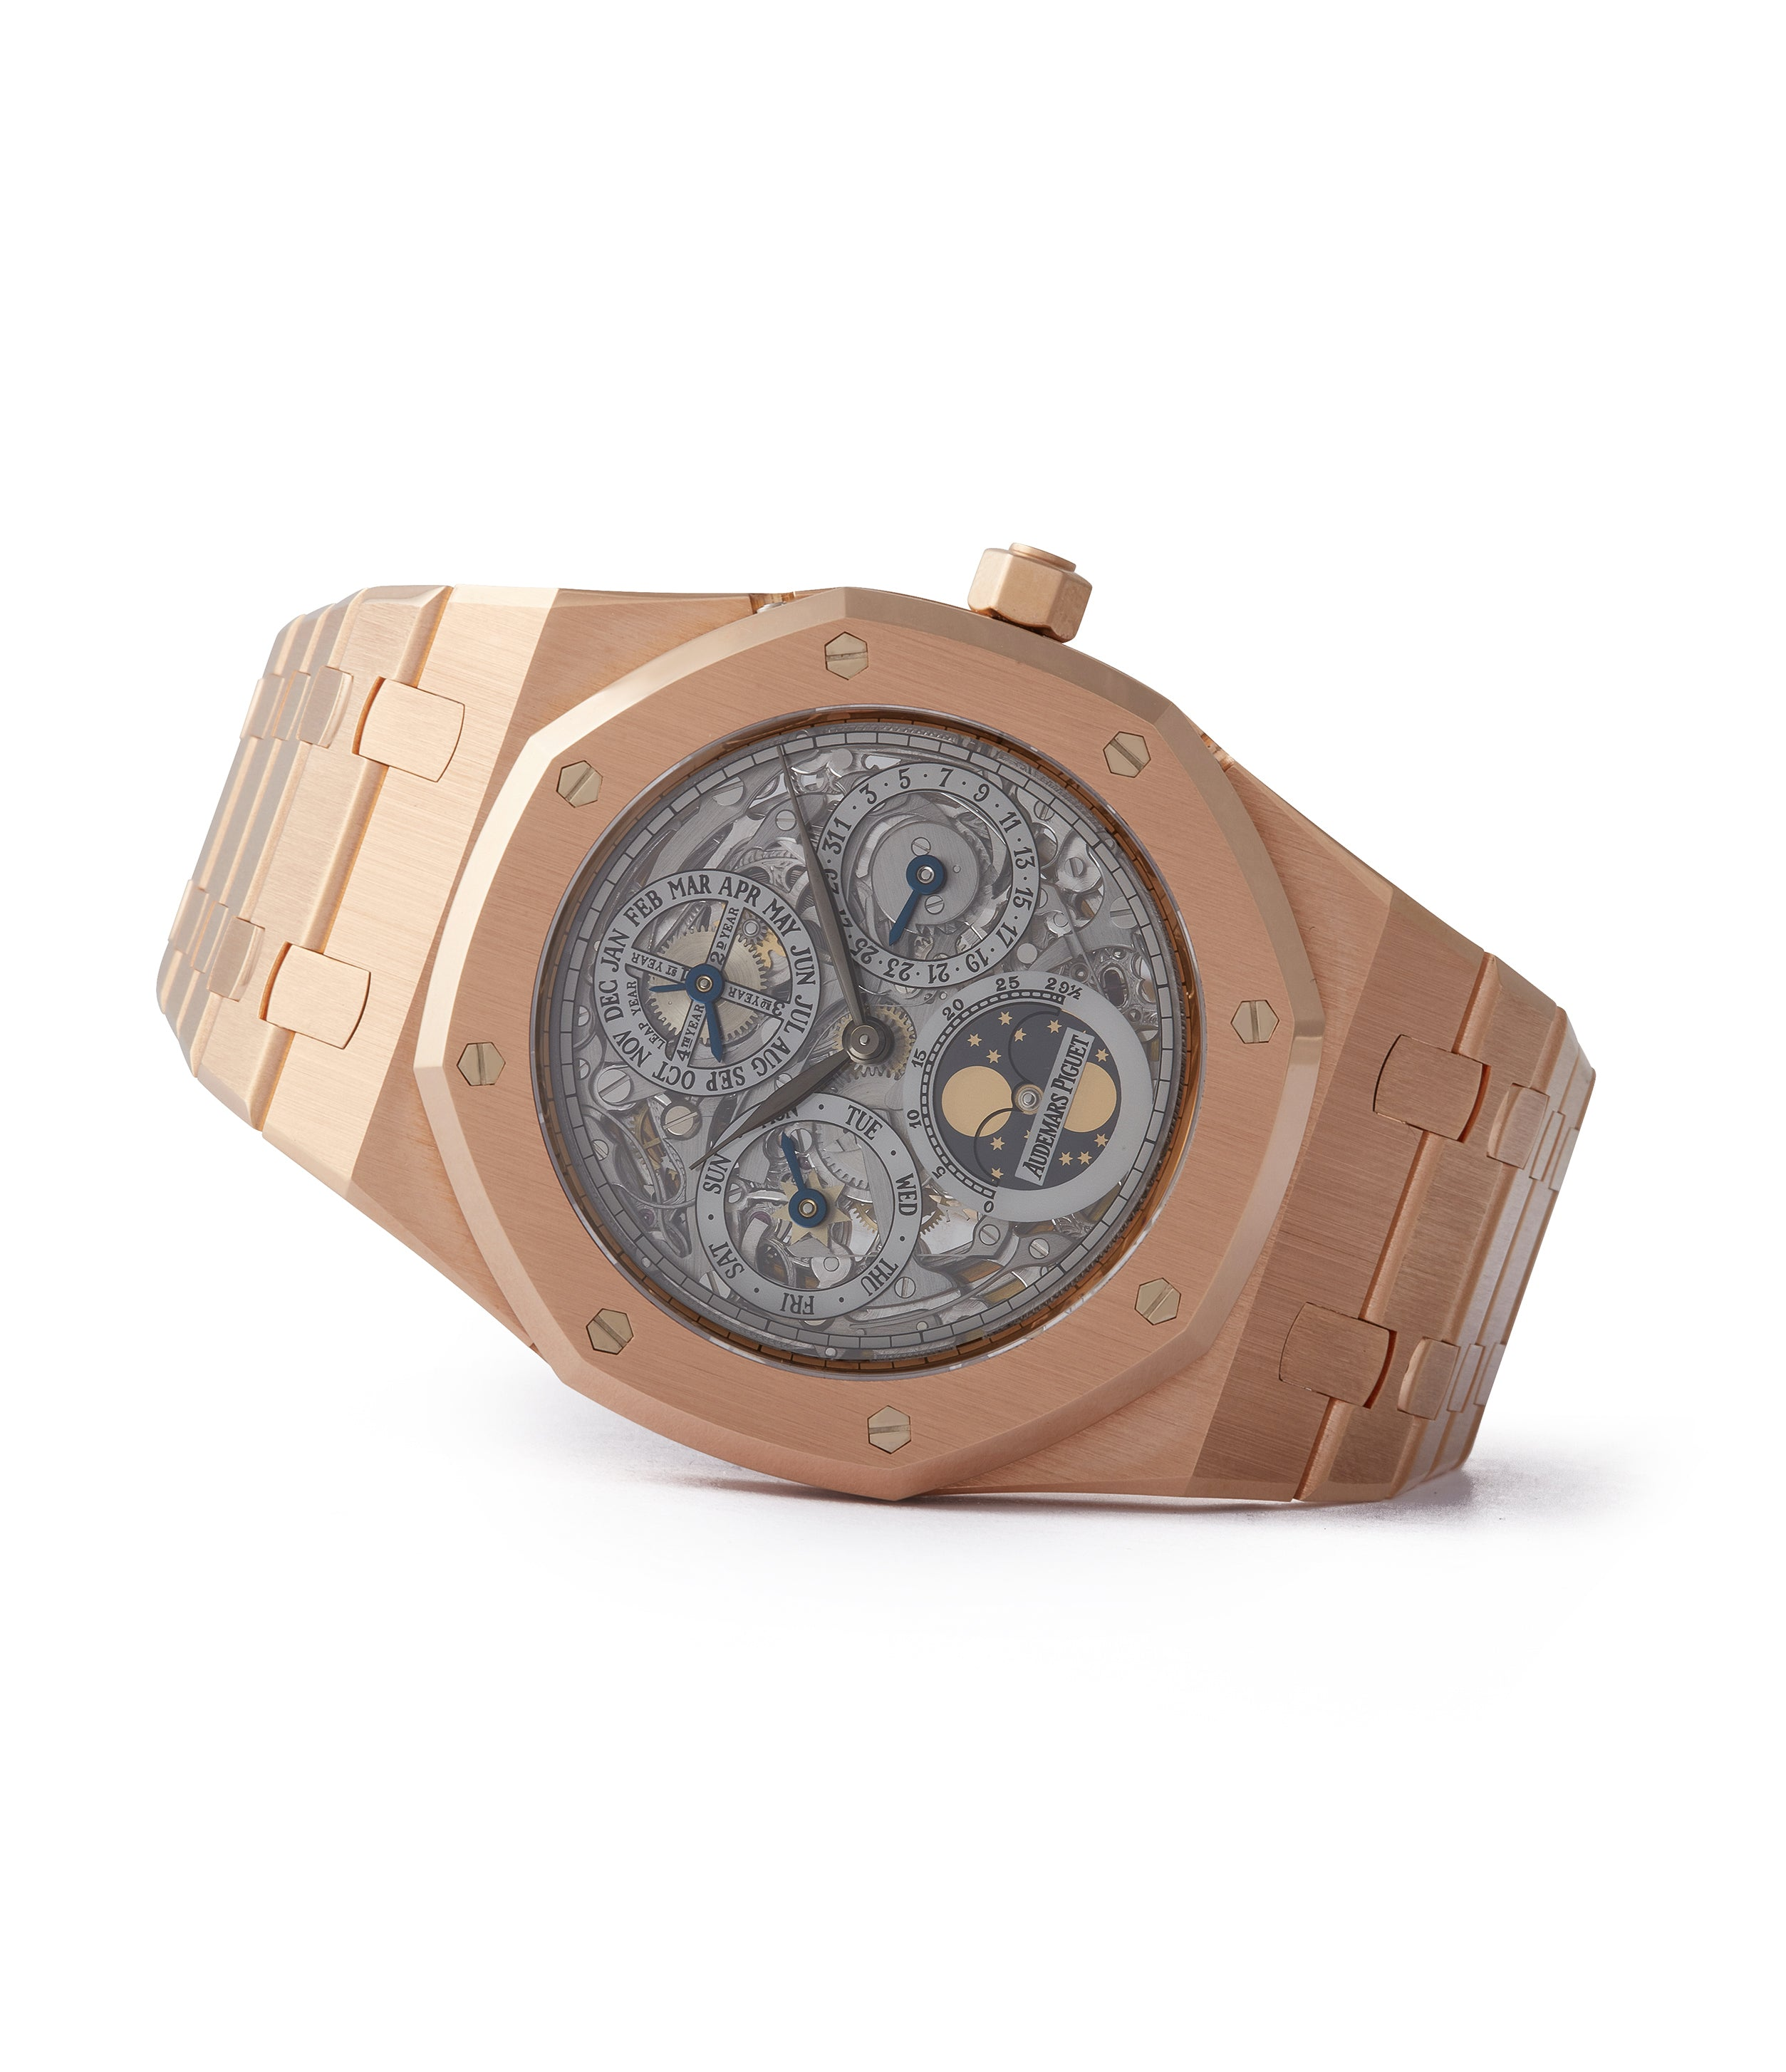 side-shot Royal Oak Audemars Piguet Quantieme Perpetual Calendar 25829OR rose gold skeletonised pre-owned sport watch for sale online at A Collected Man London UK specialist of rare watches